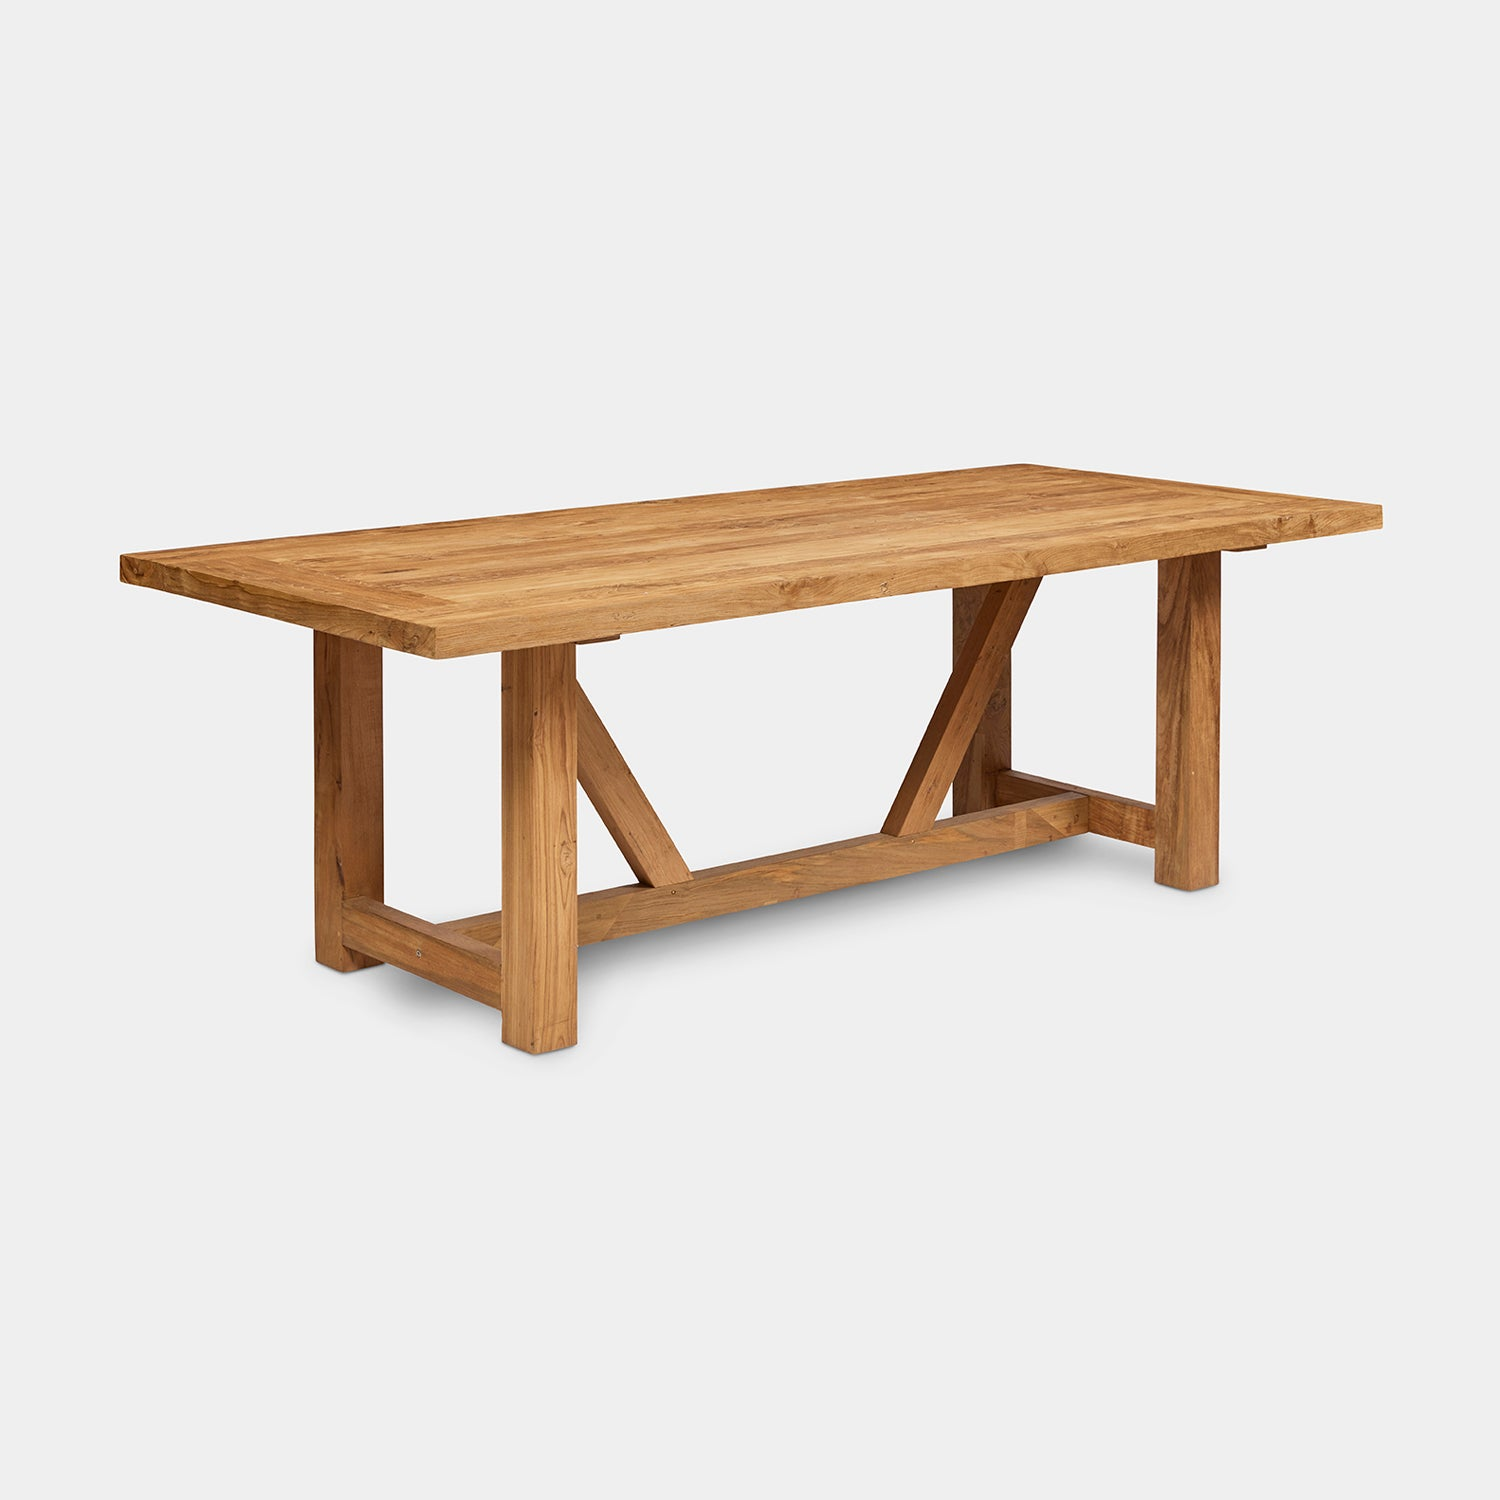 Reclaimed-Teak-Outdoor-Dining-Table-Vinegard-180-r1